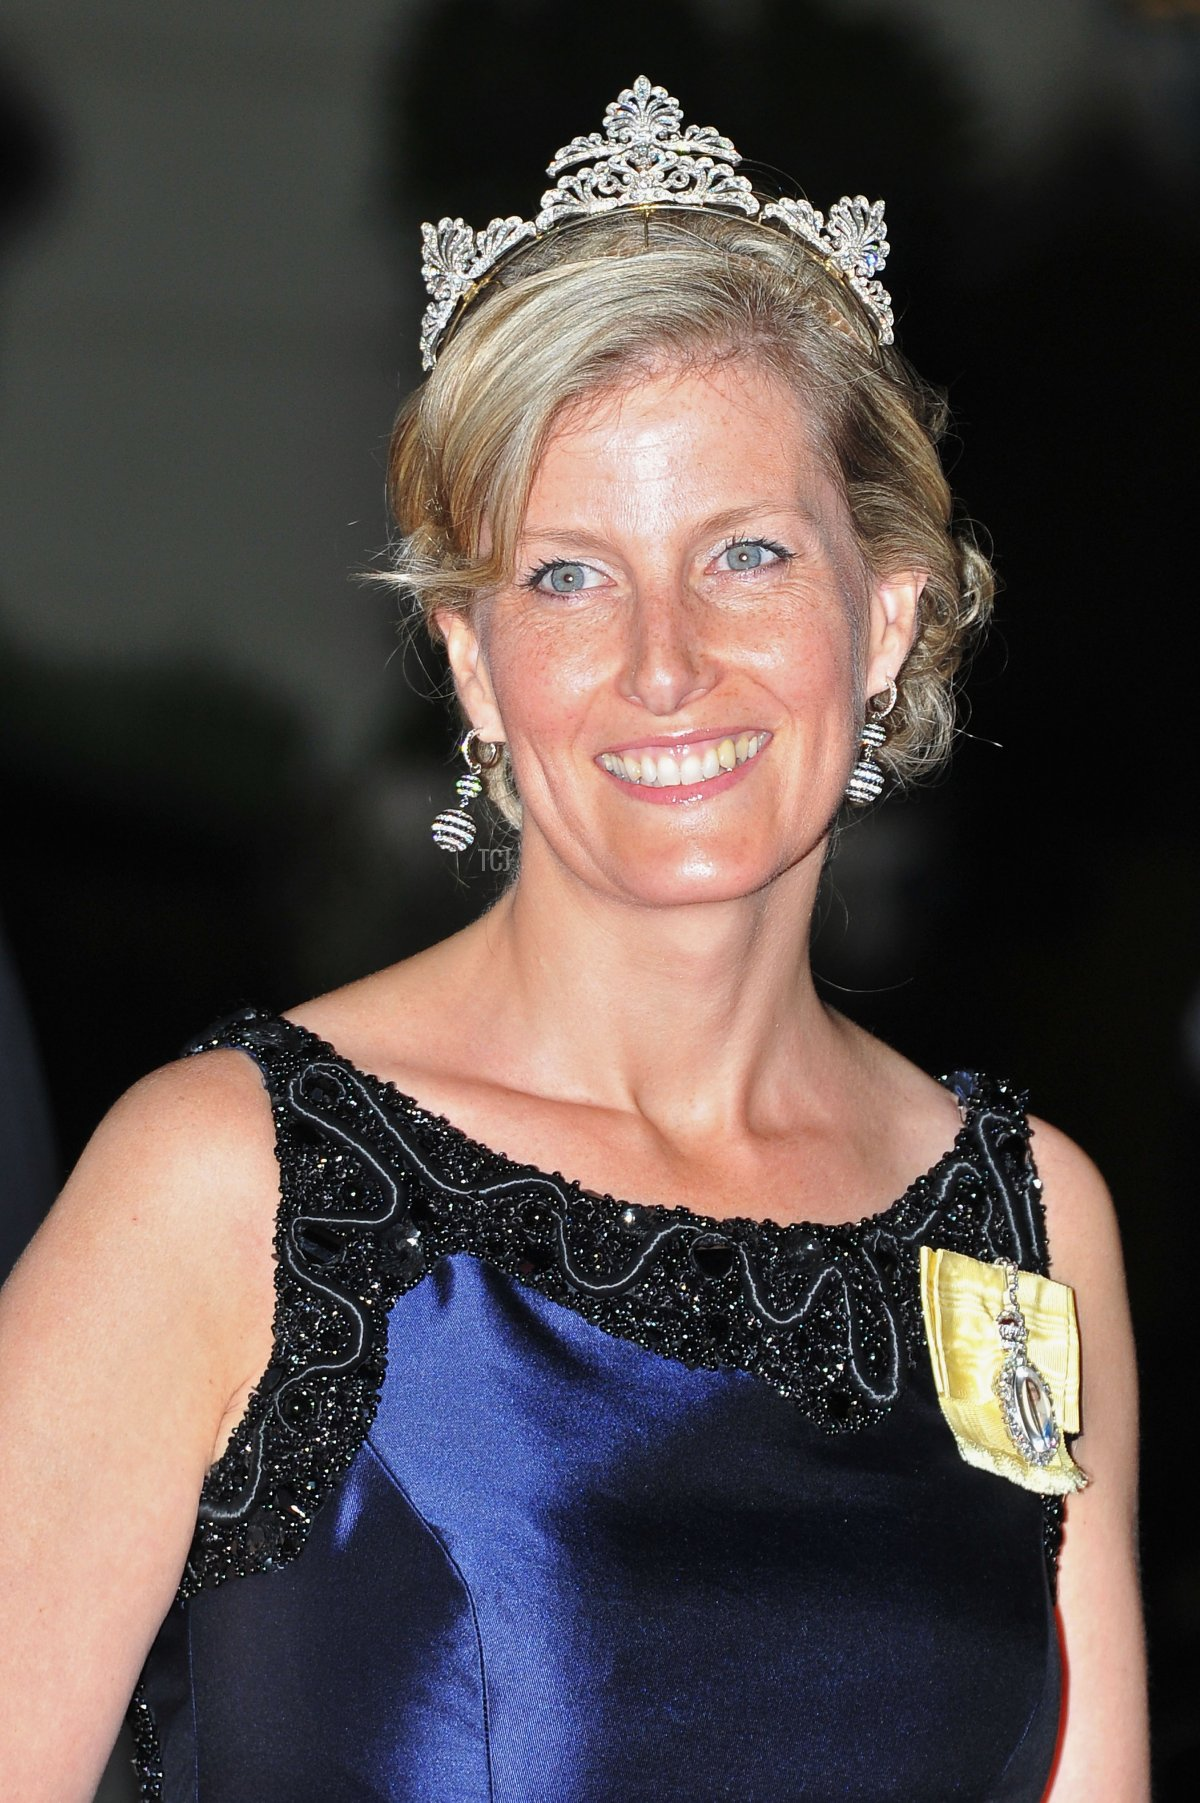 Sophie, Countess of Wessex attends a dinner at Opera terraces after the religious wedding ceremony of Prince Albert II of Monaco and Princess Charlene of Monaco on July 2, 2011 in Monaco